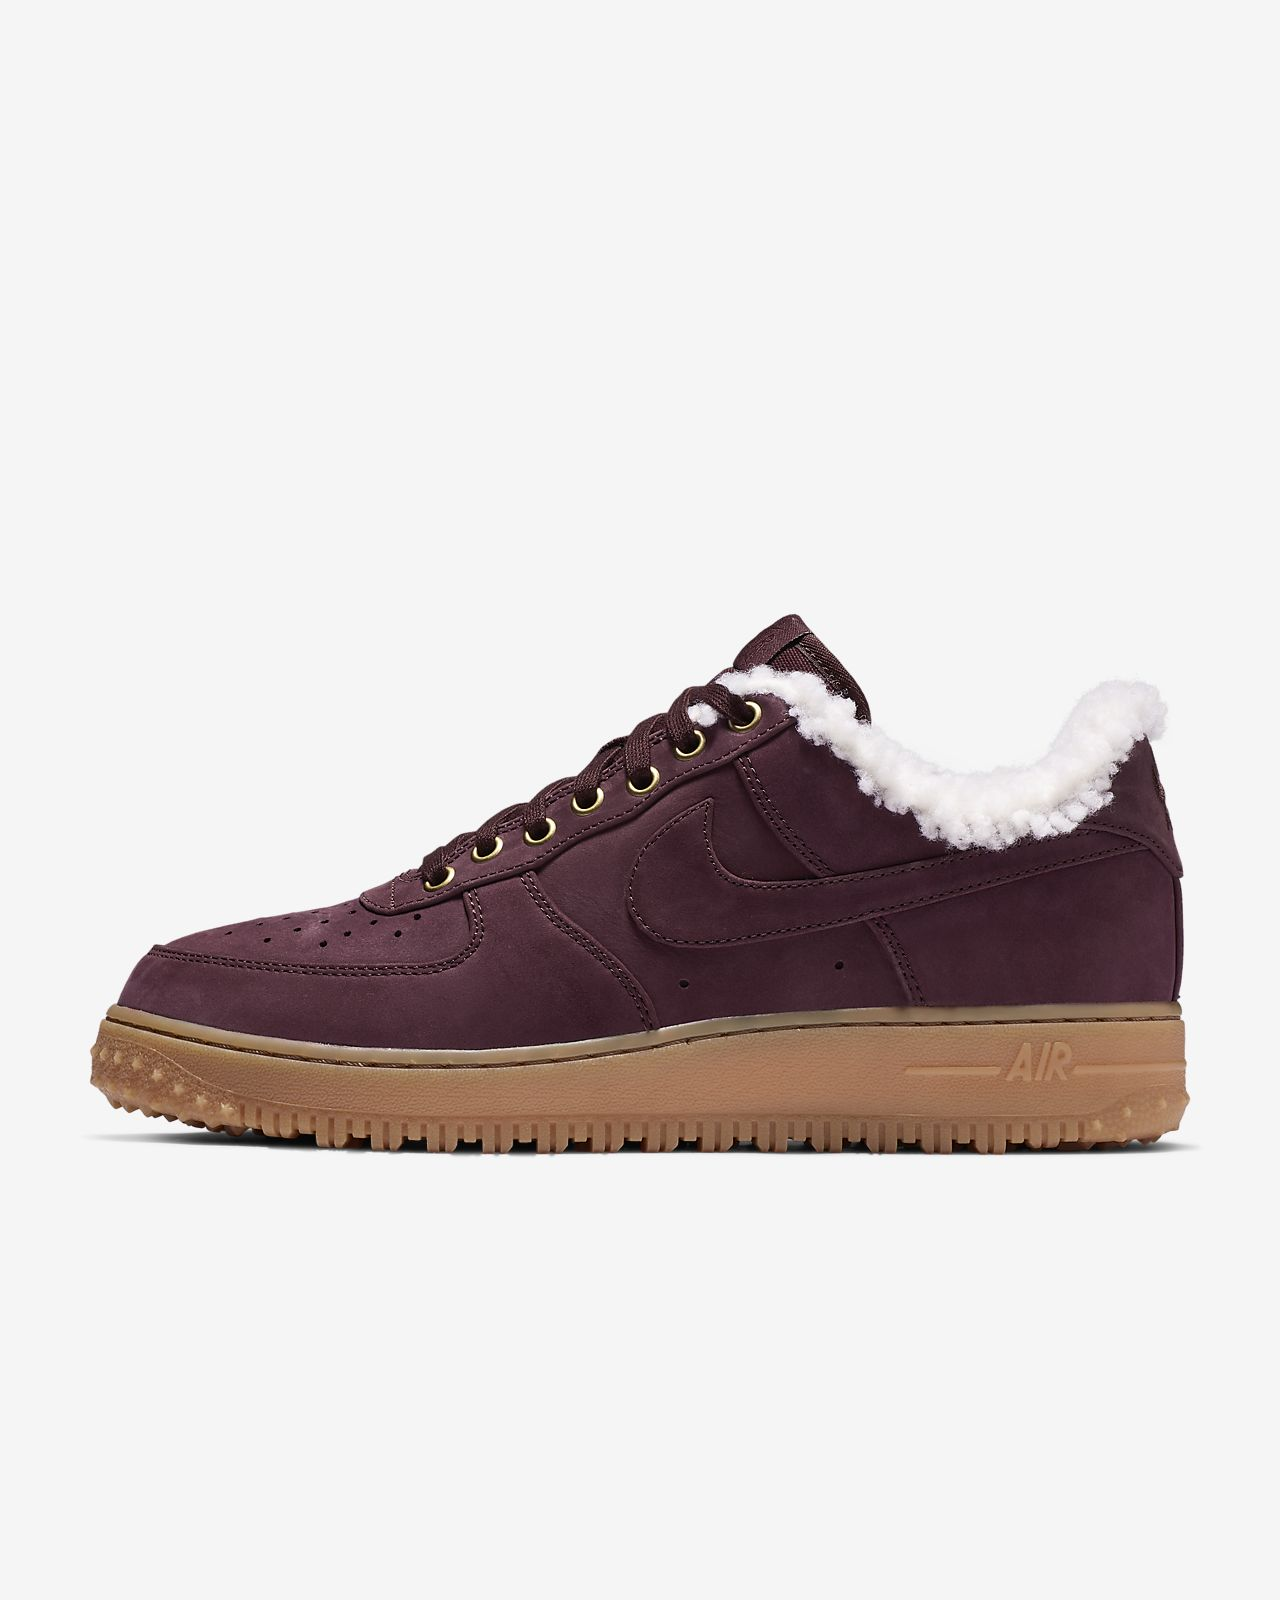 wholesale dealer 6b8ac ba036 ... Nike Air Force 1 Premium Winter Men s Shoe